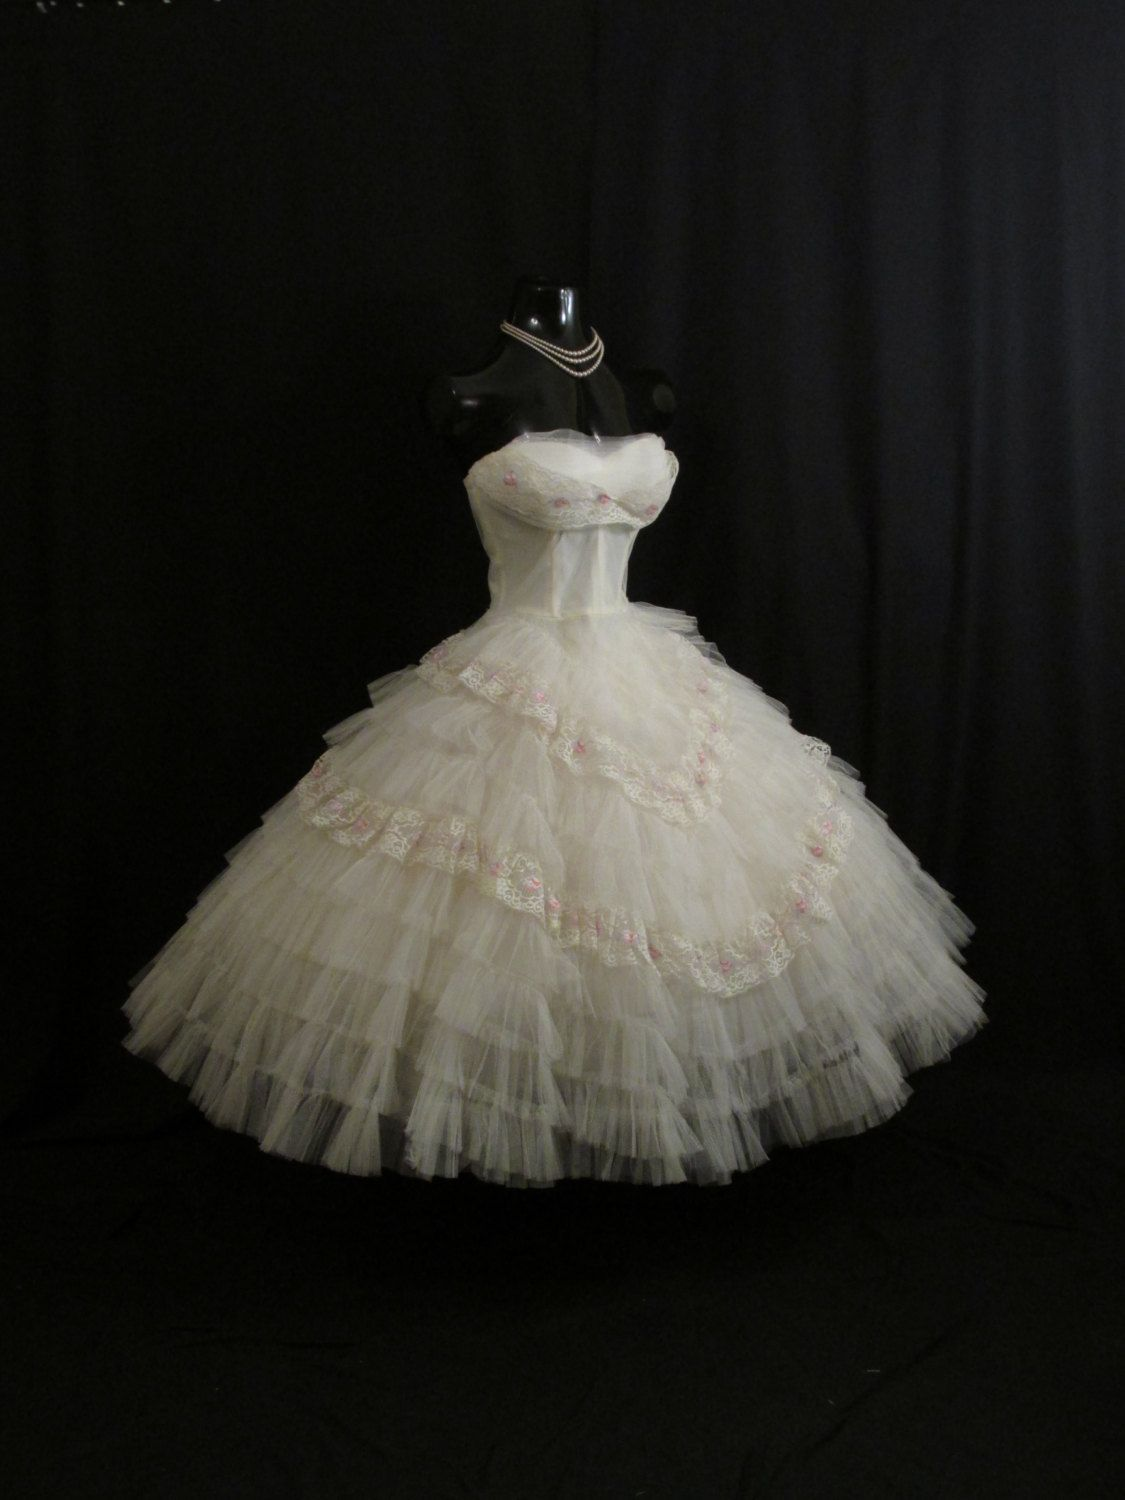 Vintage 1950's 50s STRAPLESS Bombshell White Embroidered Lace Tulle Circle Skirt Party Prom Wedding DRESS Gown by VintageVortex on Etsy https://www.etsy.com/listing/184025168/vintage-1950s-50s-strapless-bombshell